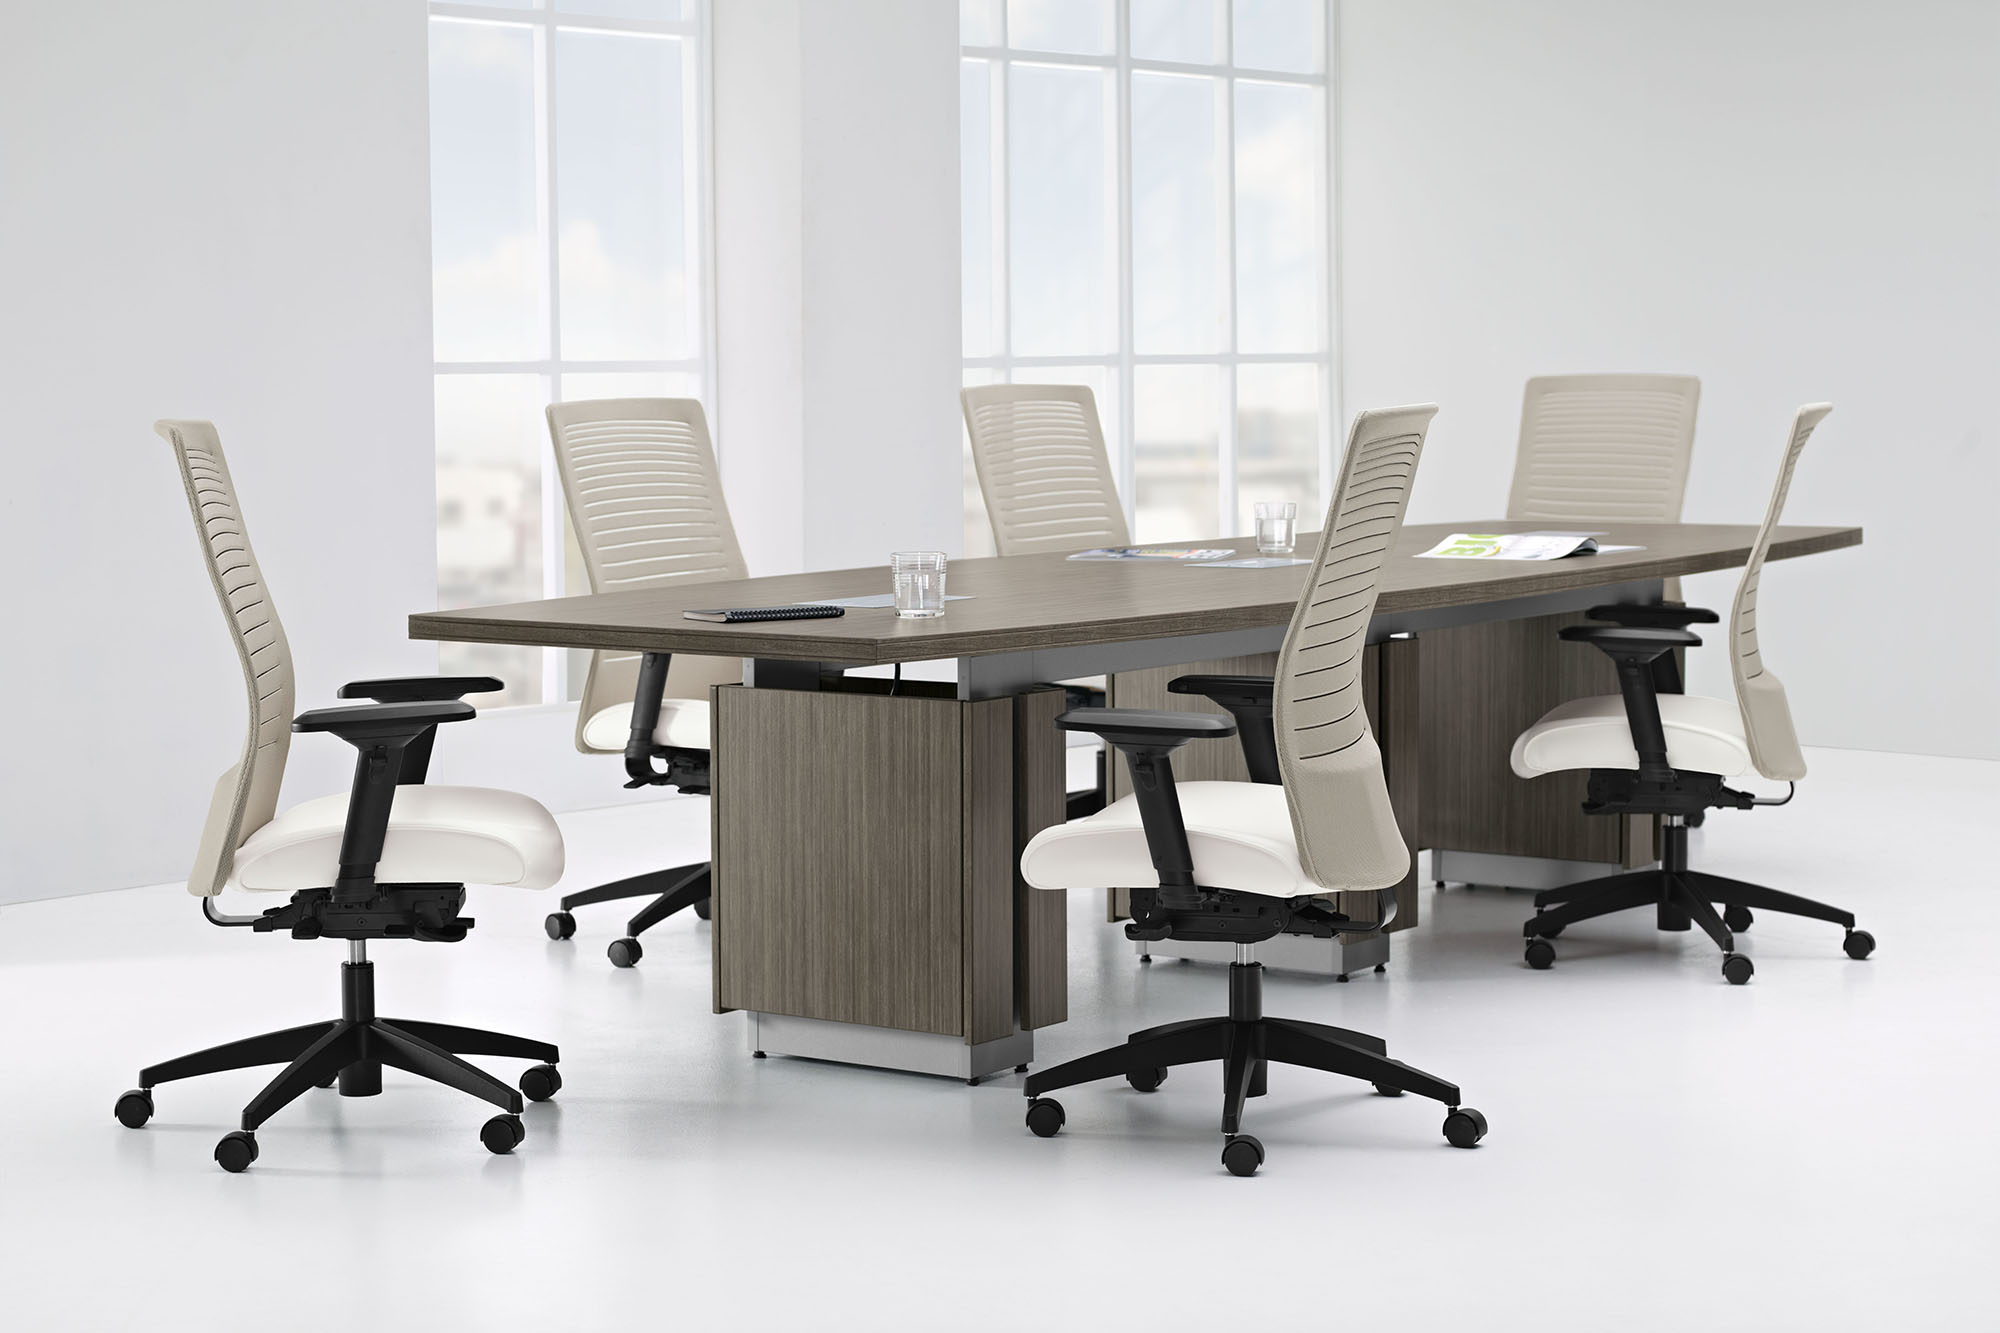 used conference table chairs swing chair canopy replacement office tables virginia dc maryland